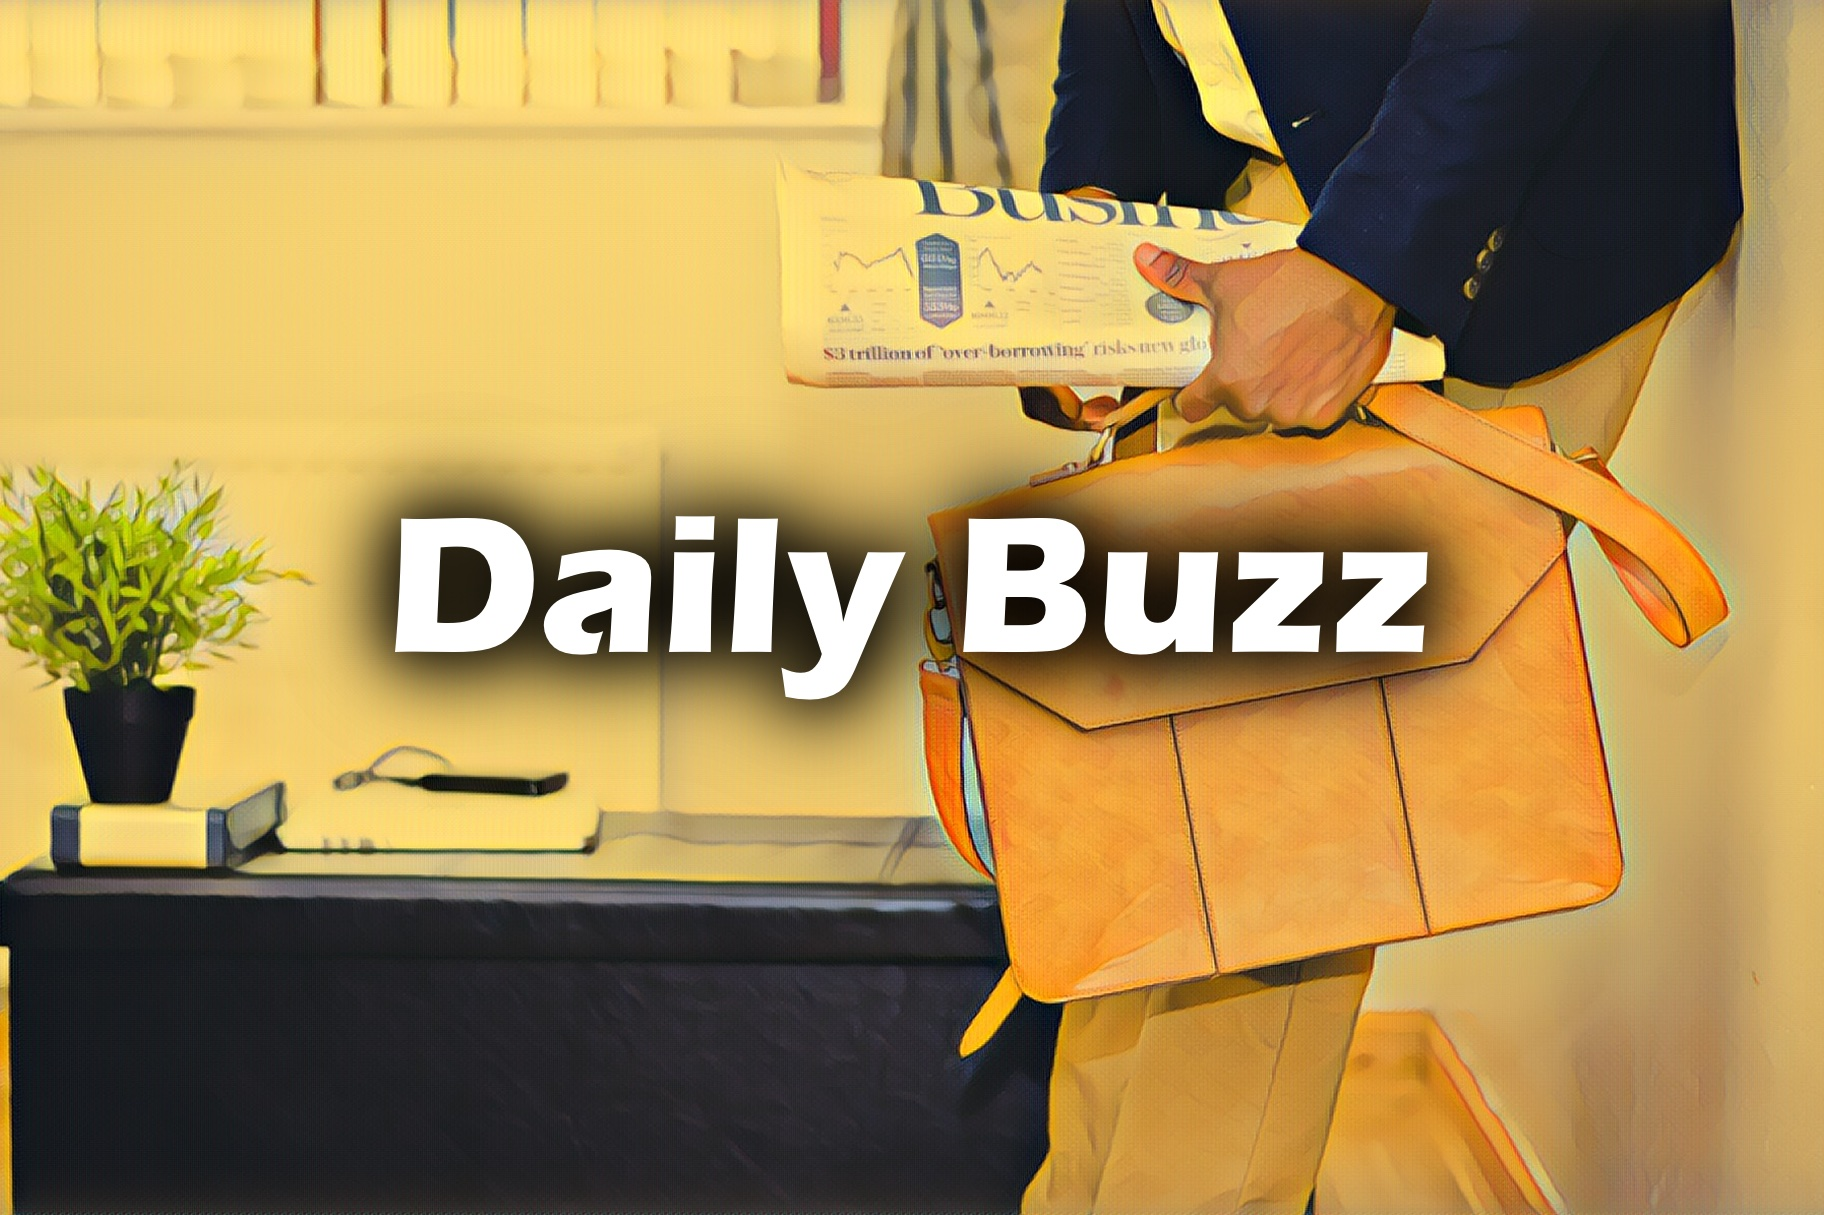 DailyBuzz Friday 22 June 2018